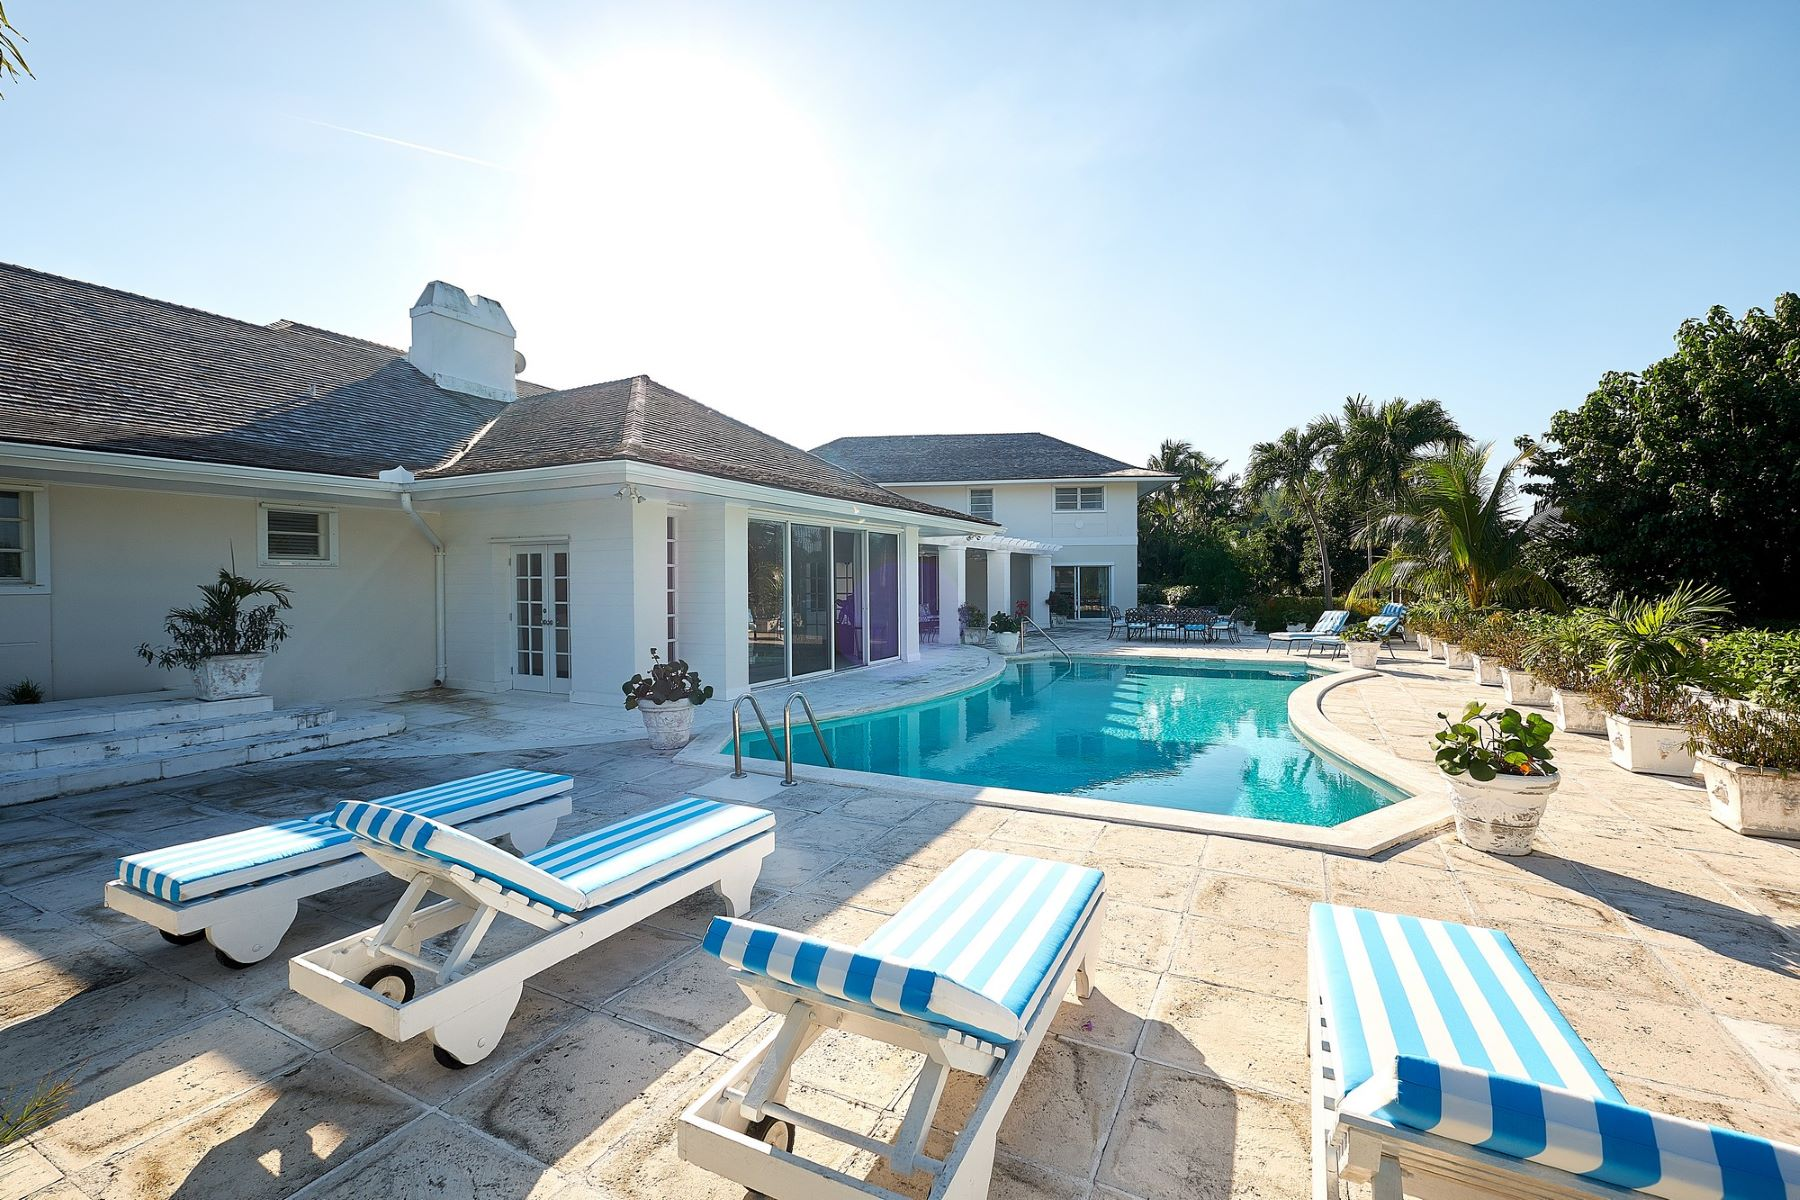 Single Family Home for Sale at A Little Bit of Heaven A little bit of heaven West Lyford Place Lyford Cay, Nassau And Paradise Island 0 Bahamas